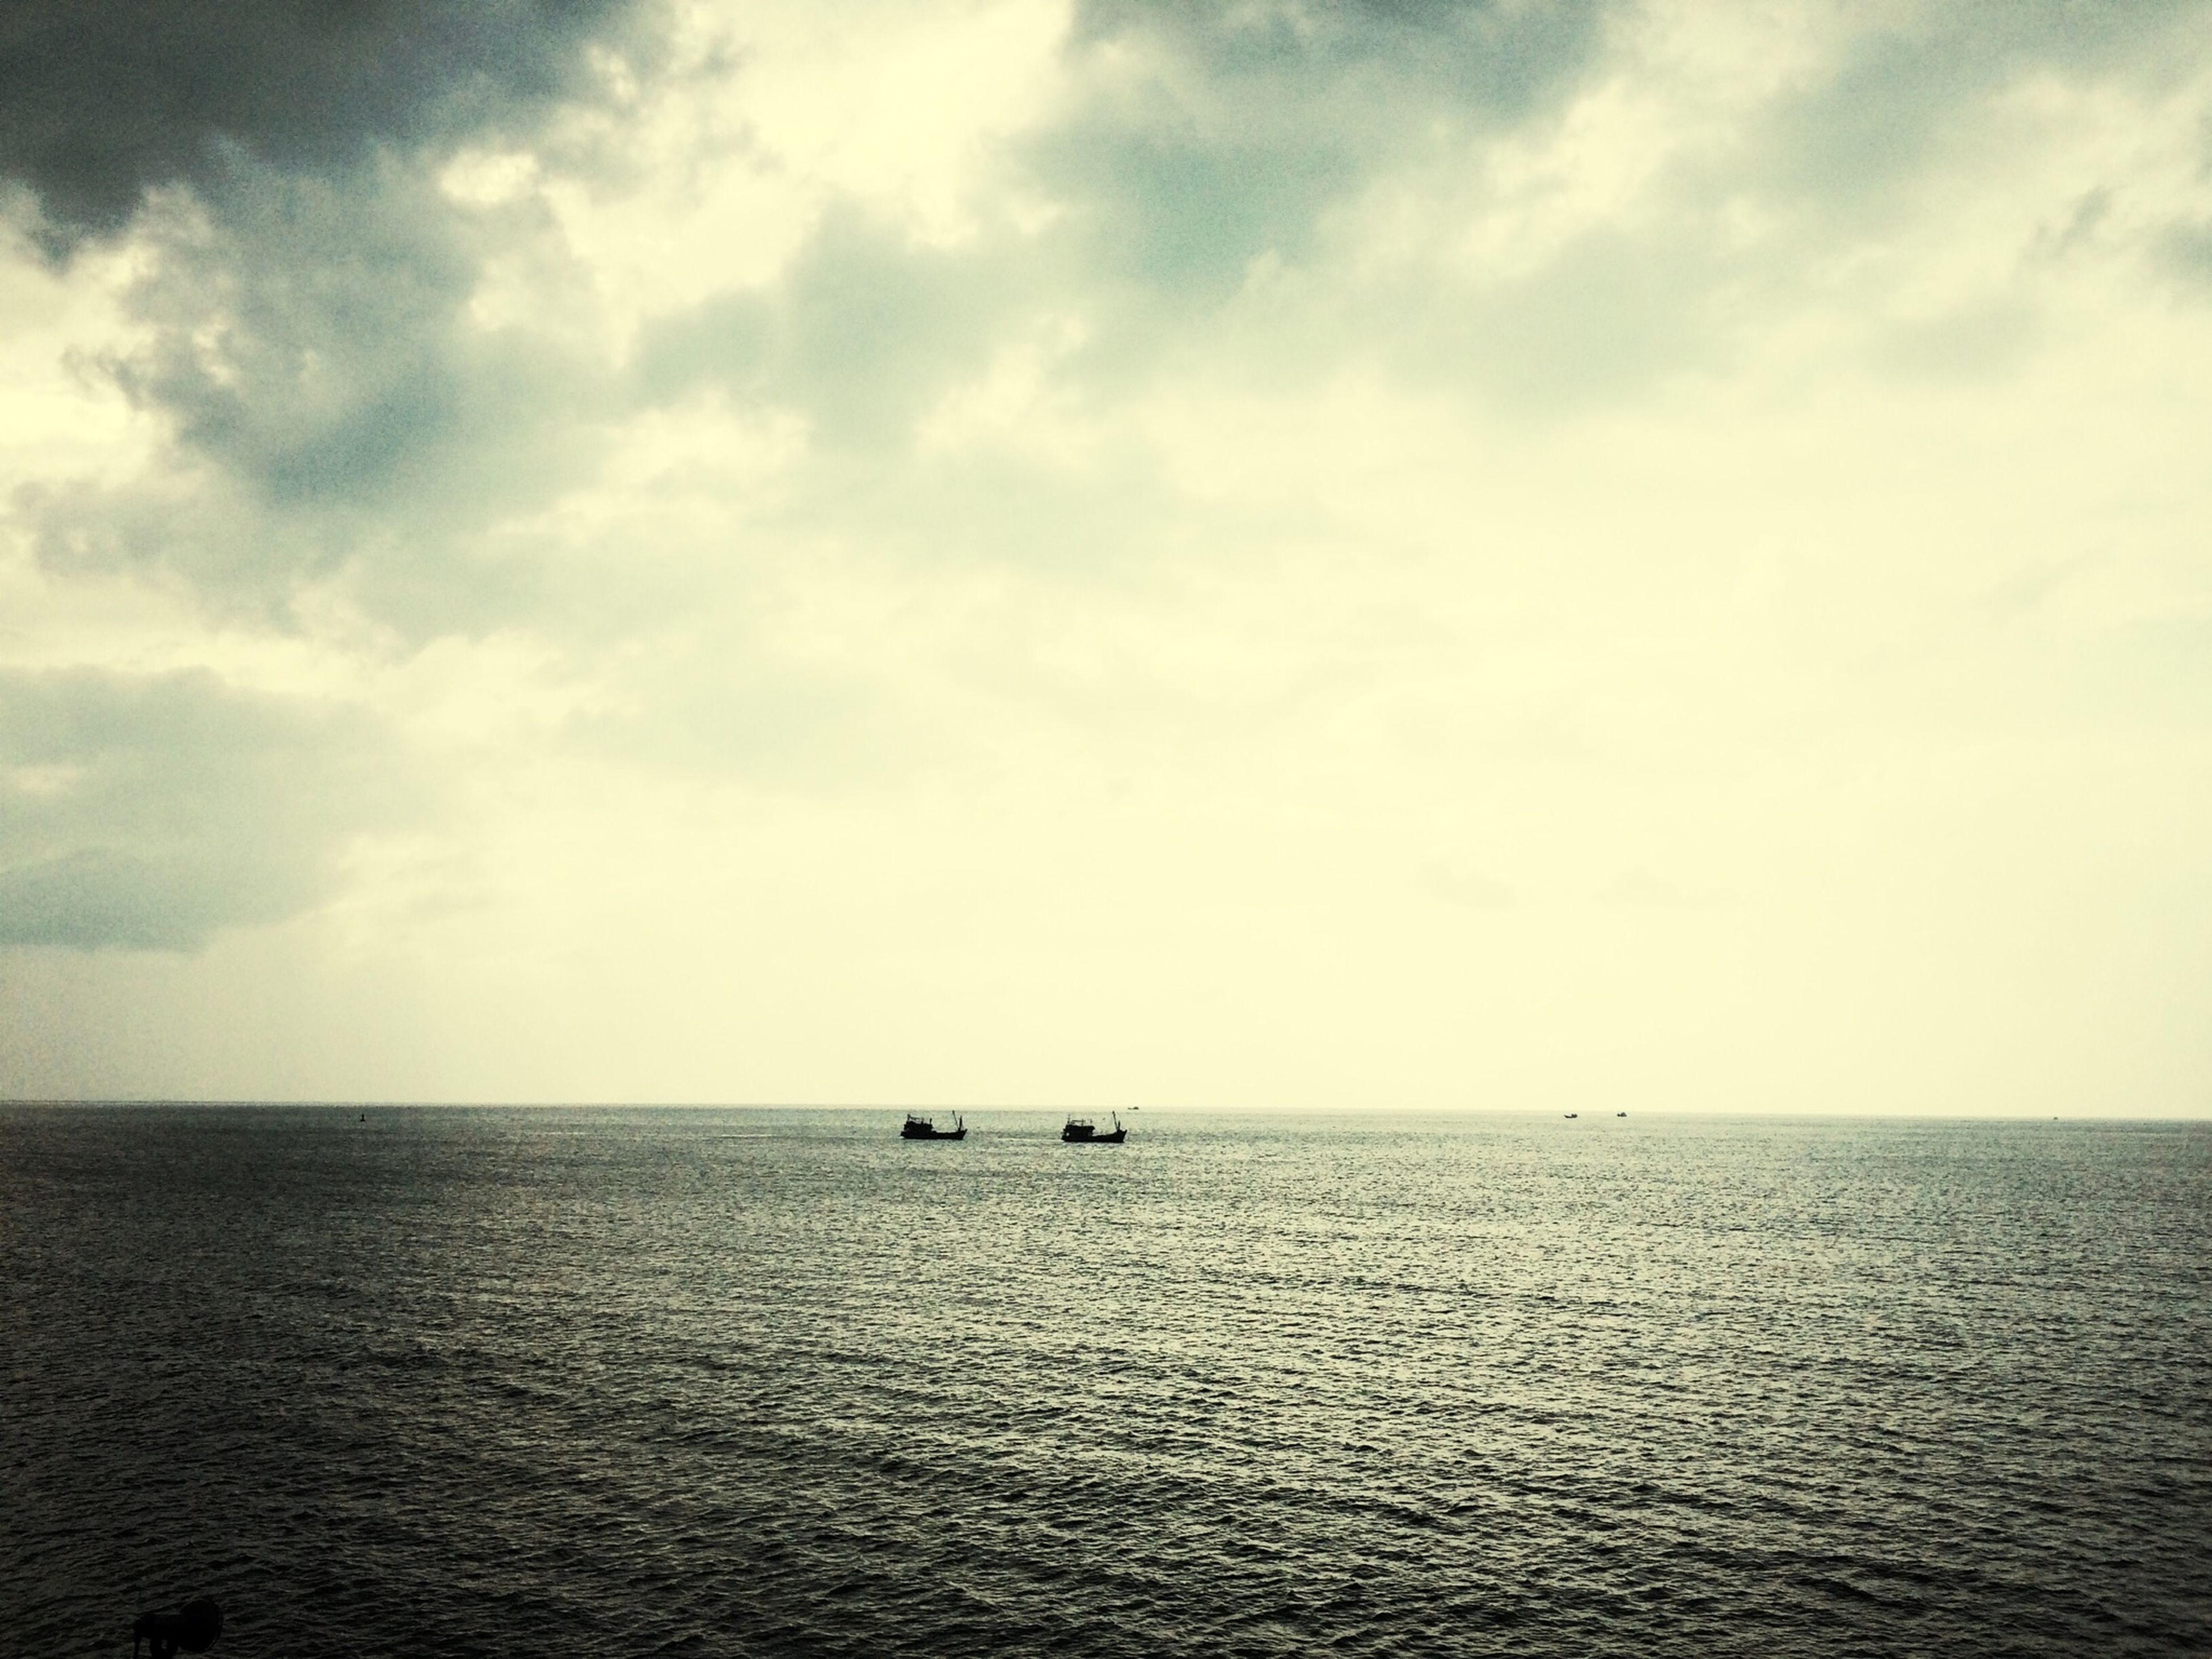 sea, horizon over water, water, waterfront, sky, tranquil scene, tranquility, scenics, beauty in nature, nautical vessel, seascape, rippled, nature, transportation, boat, cloud - sky, idyllic, cloud, mode of transport, outdoors